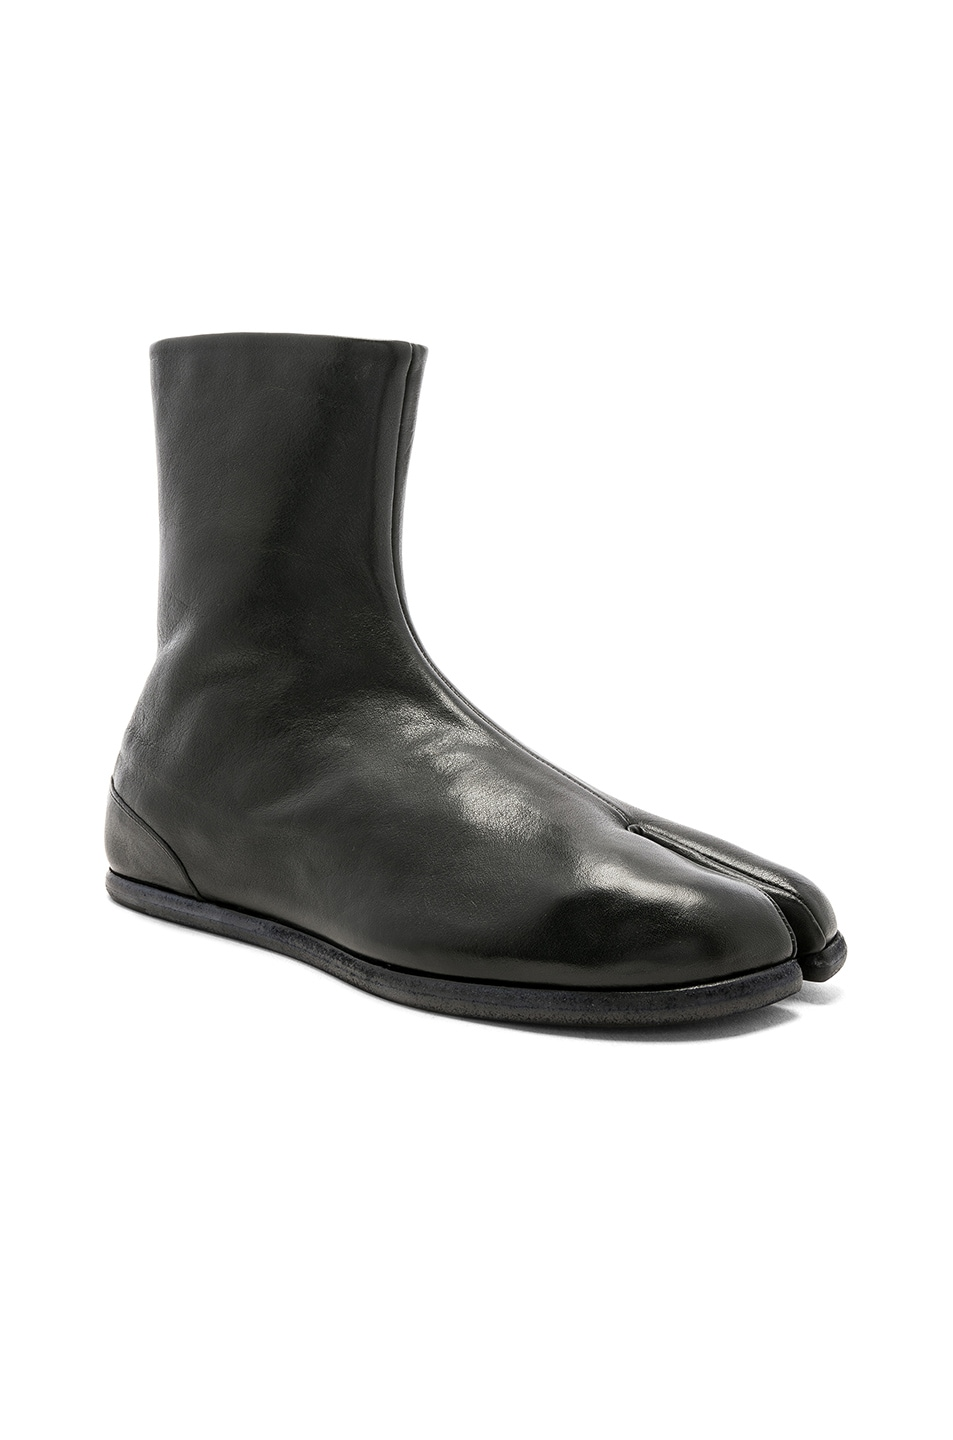 Image 1 of Maison Margiela Leather Tabi Boots in Black